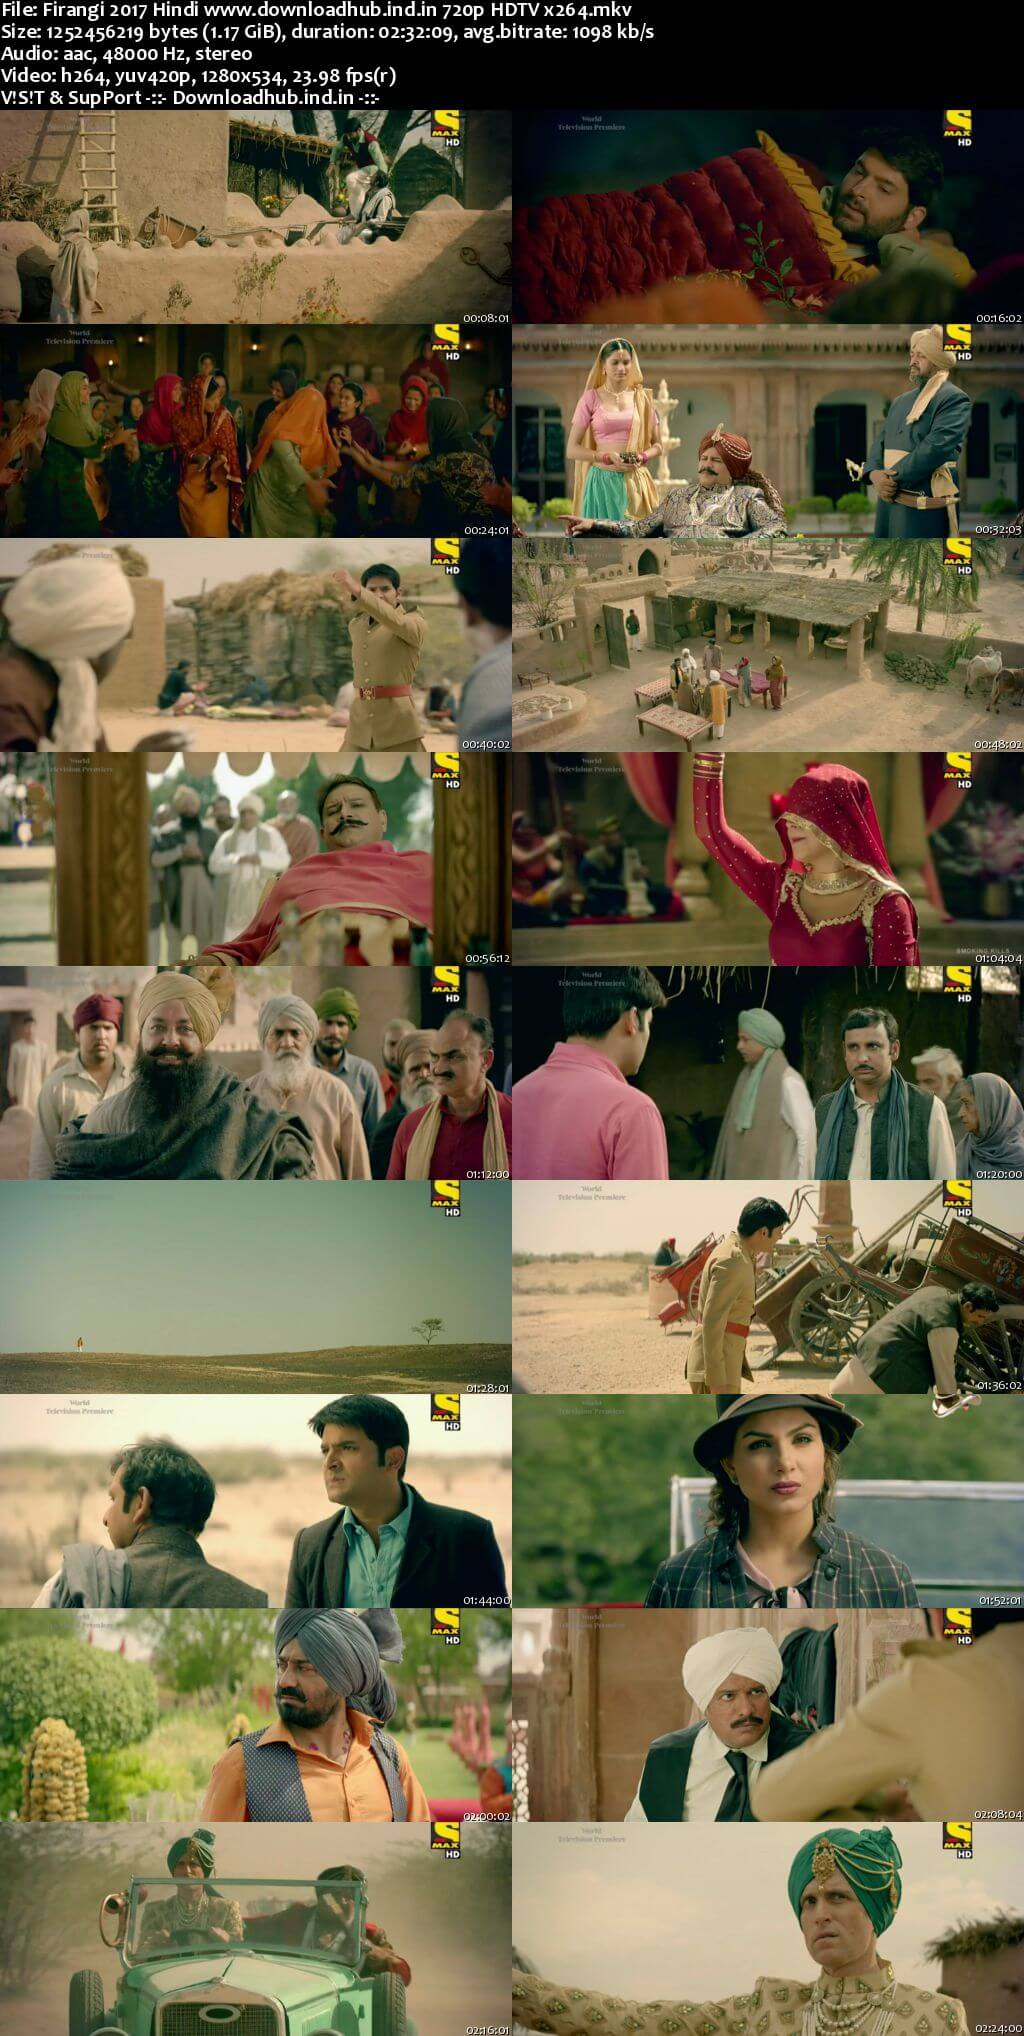 Firangi 2017 Hindi 720p HDTV x264